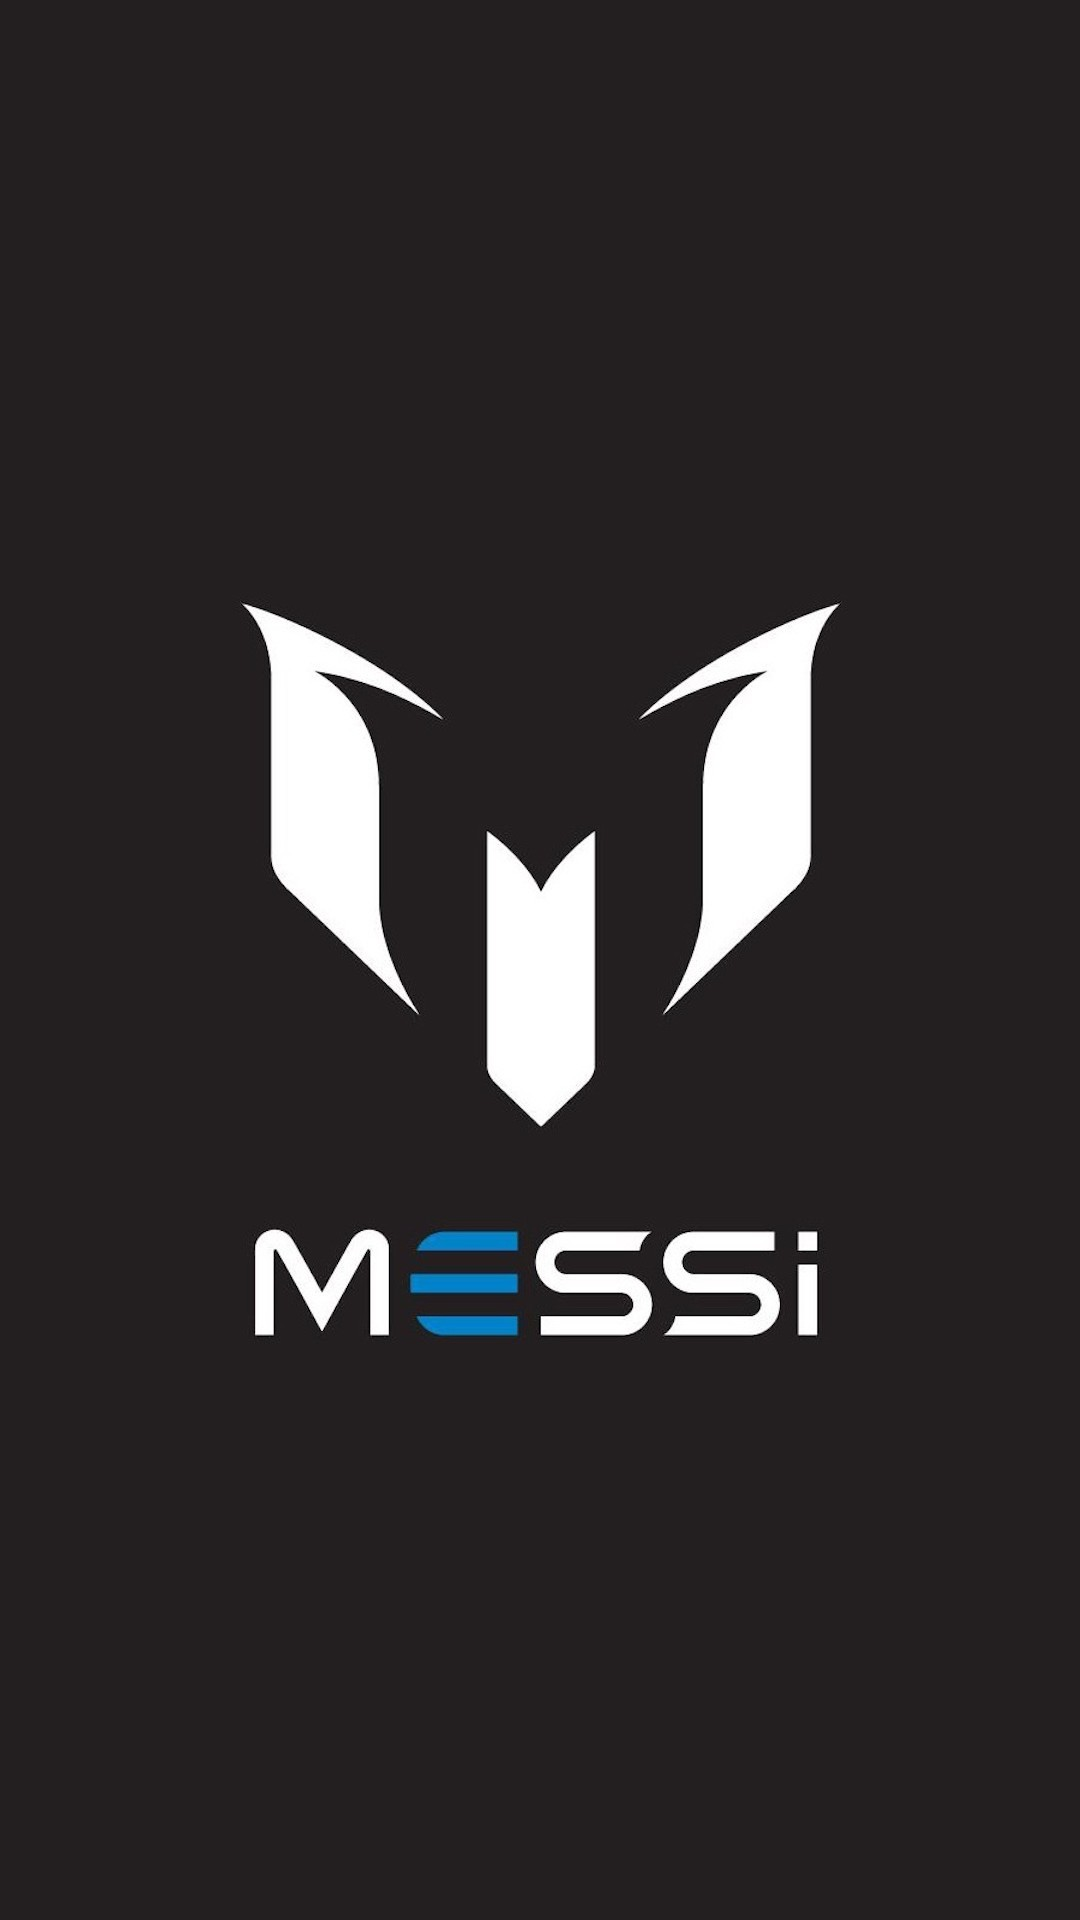 Messi Wallpaper Iphone 6 Messi Logo Wallpapers 75 Images